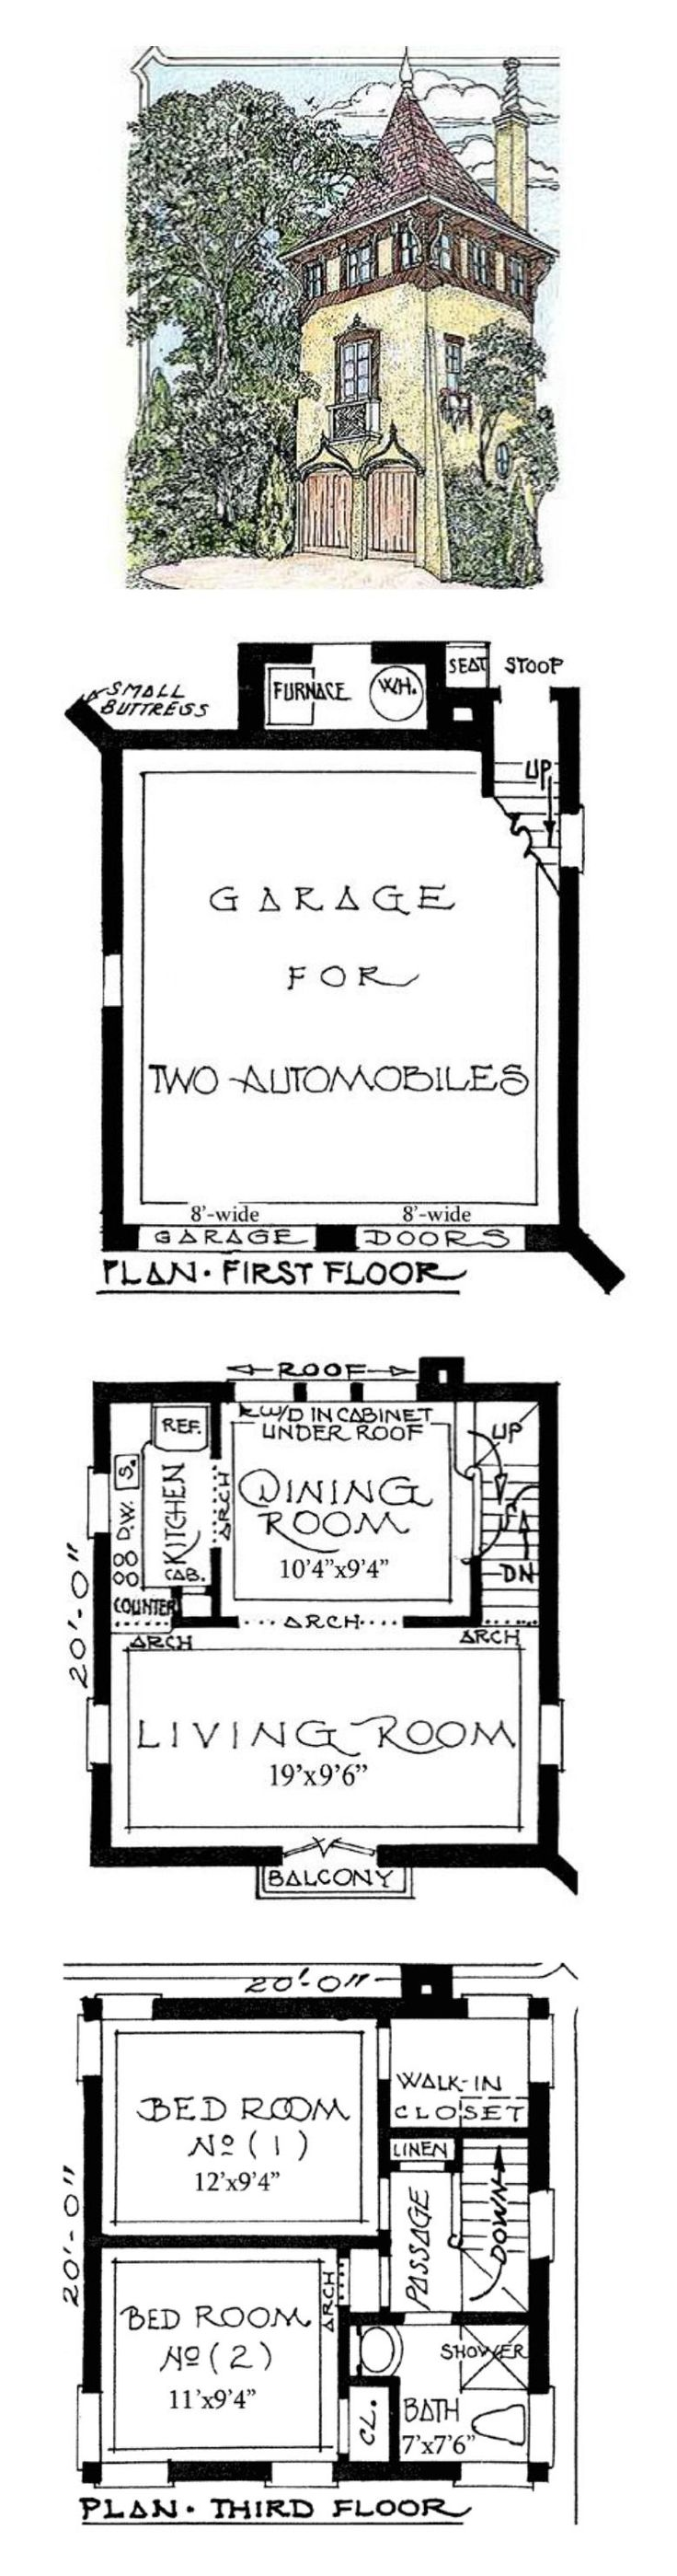 25 Best Ideas About Tower House On Pinterest Tiny House Plans